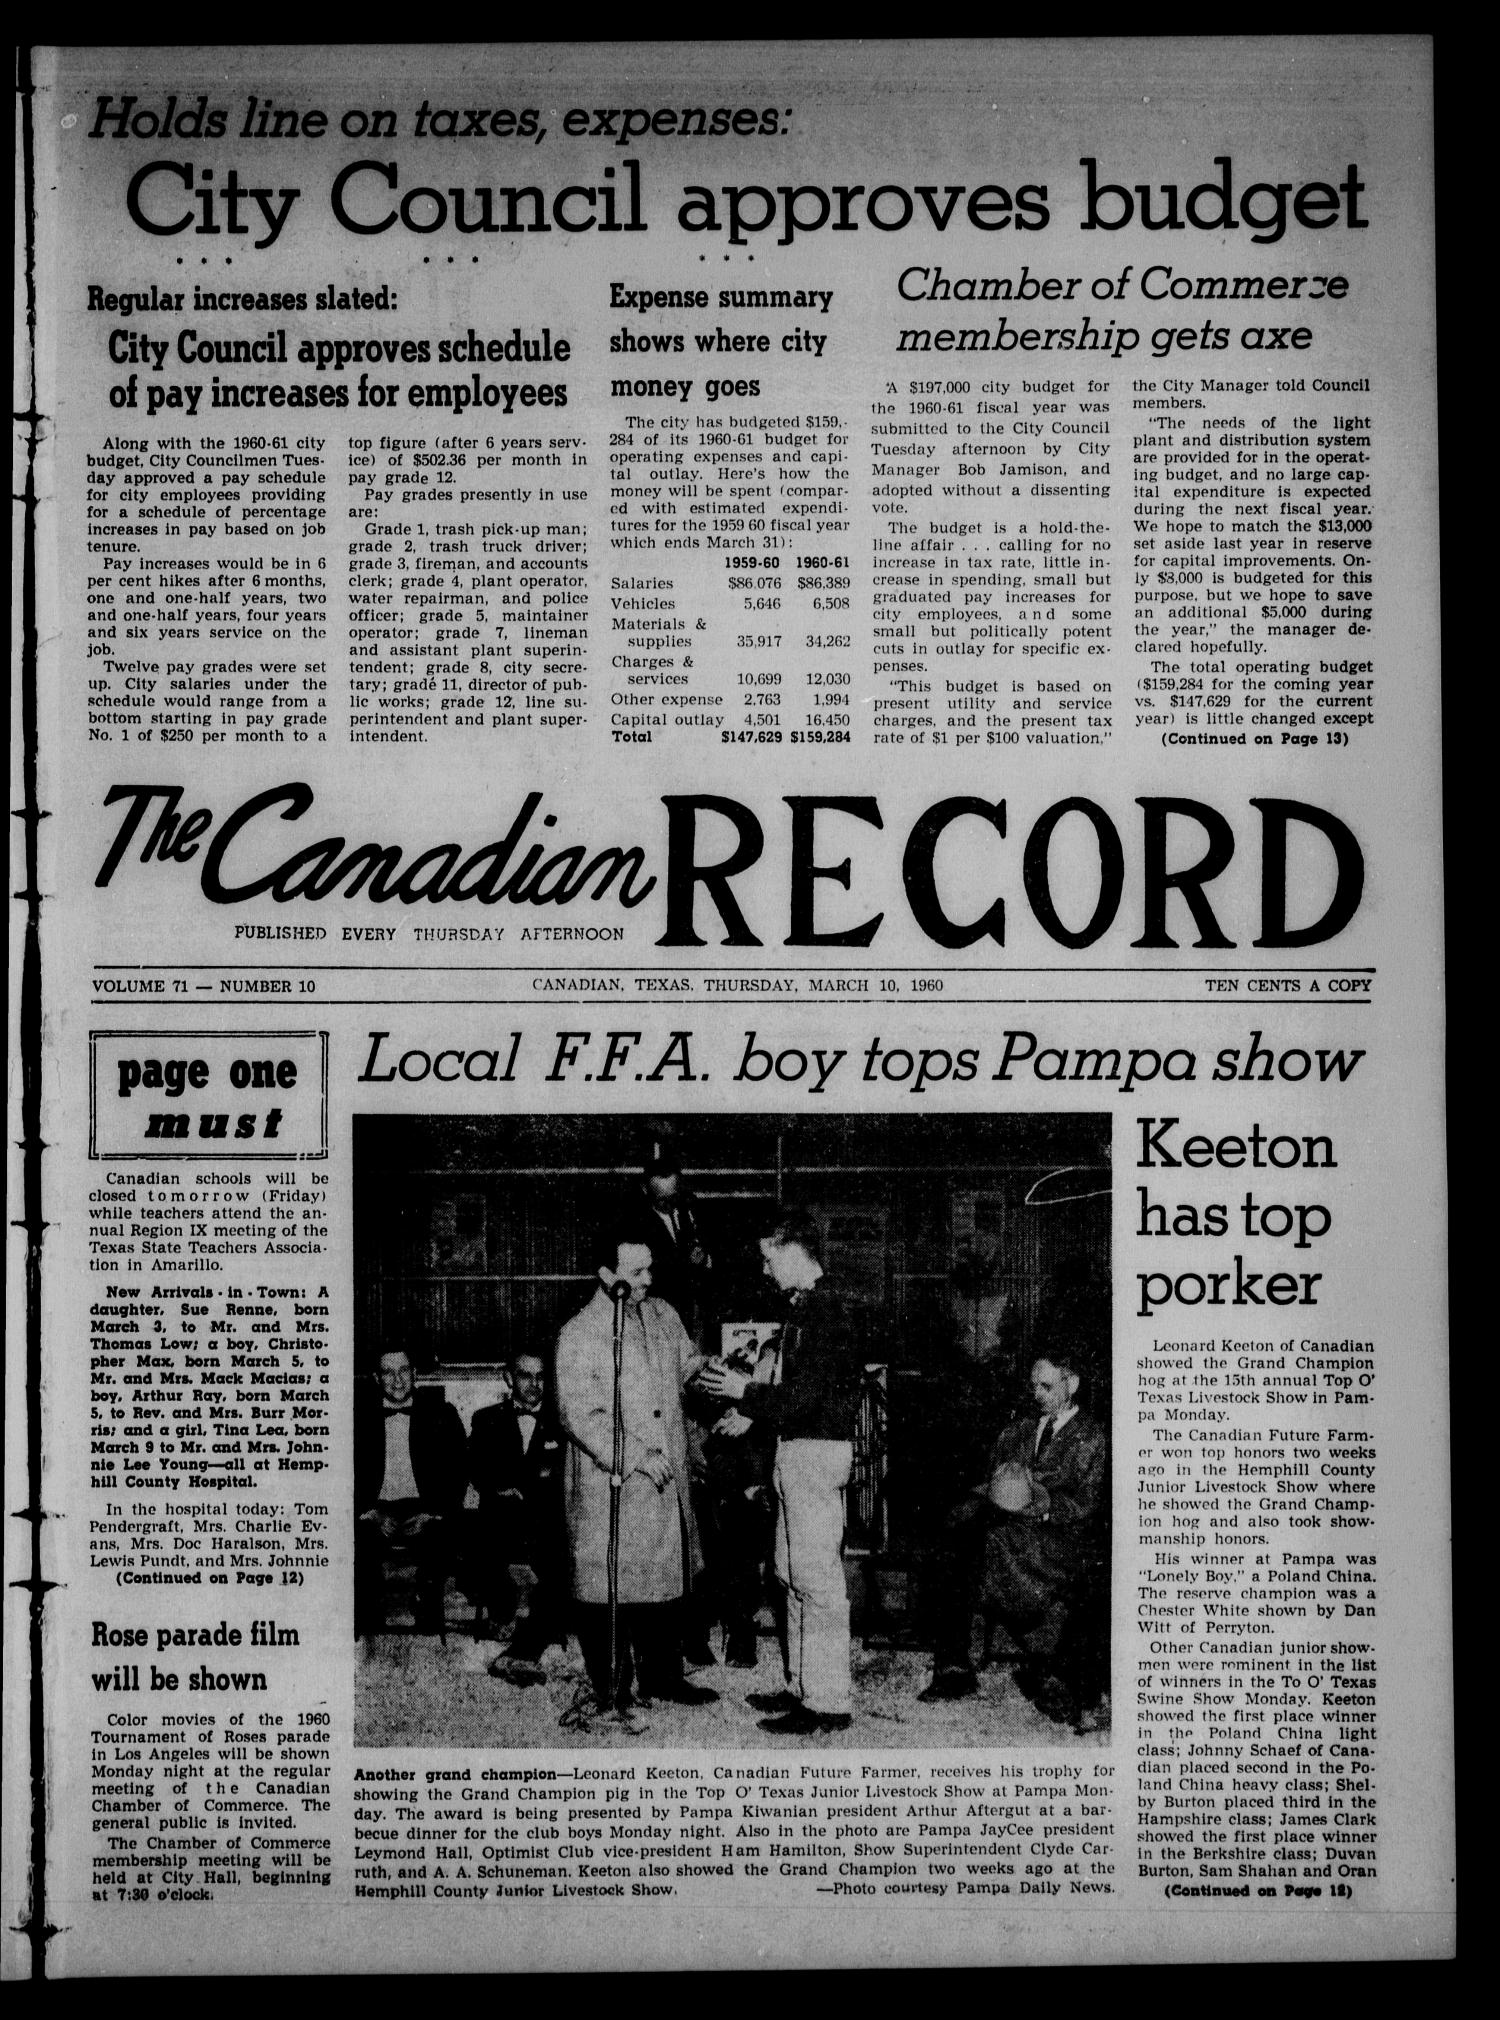 The Canadian Record (Canadian, Tex.), Vol. 71, No. 10, Ed. 1 Thursday, March 10, 1960                                                                                                      [Sequence #]: 1 of 16